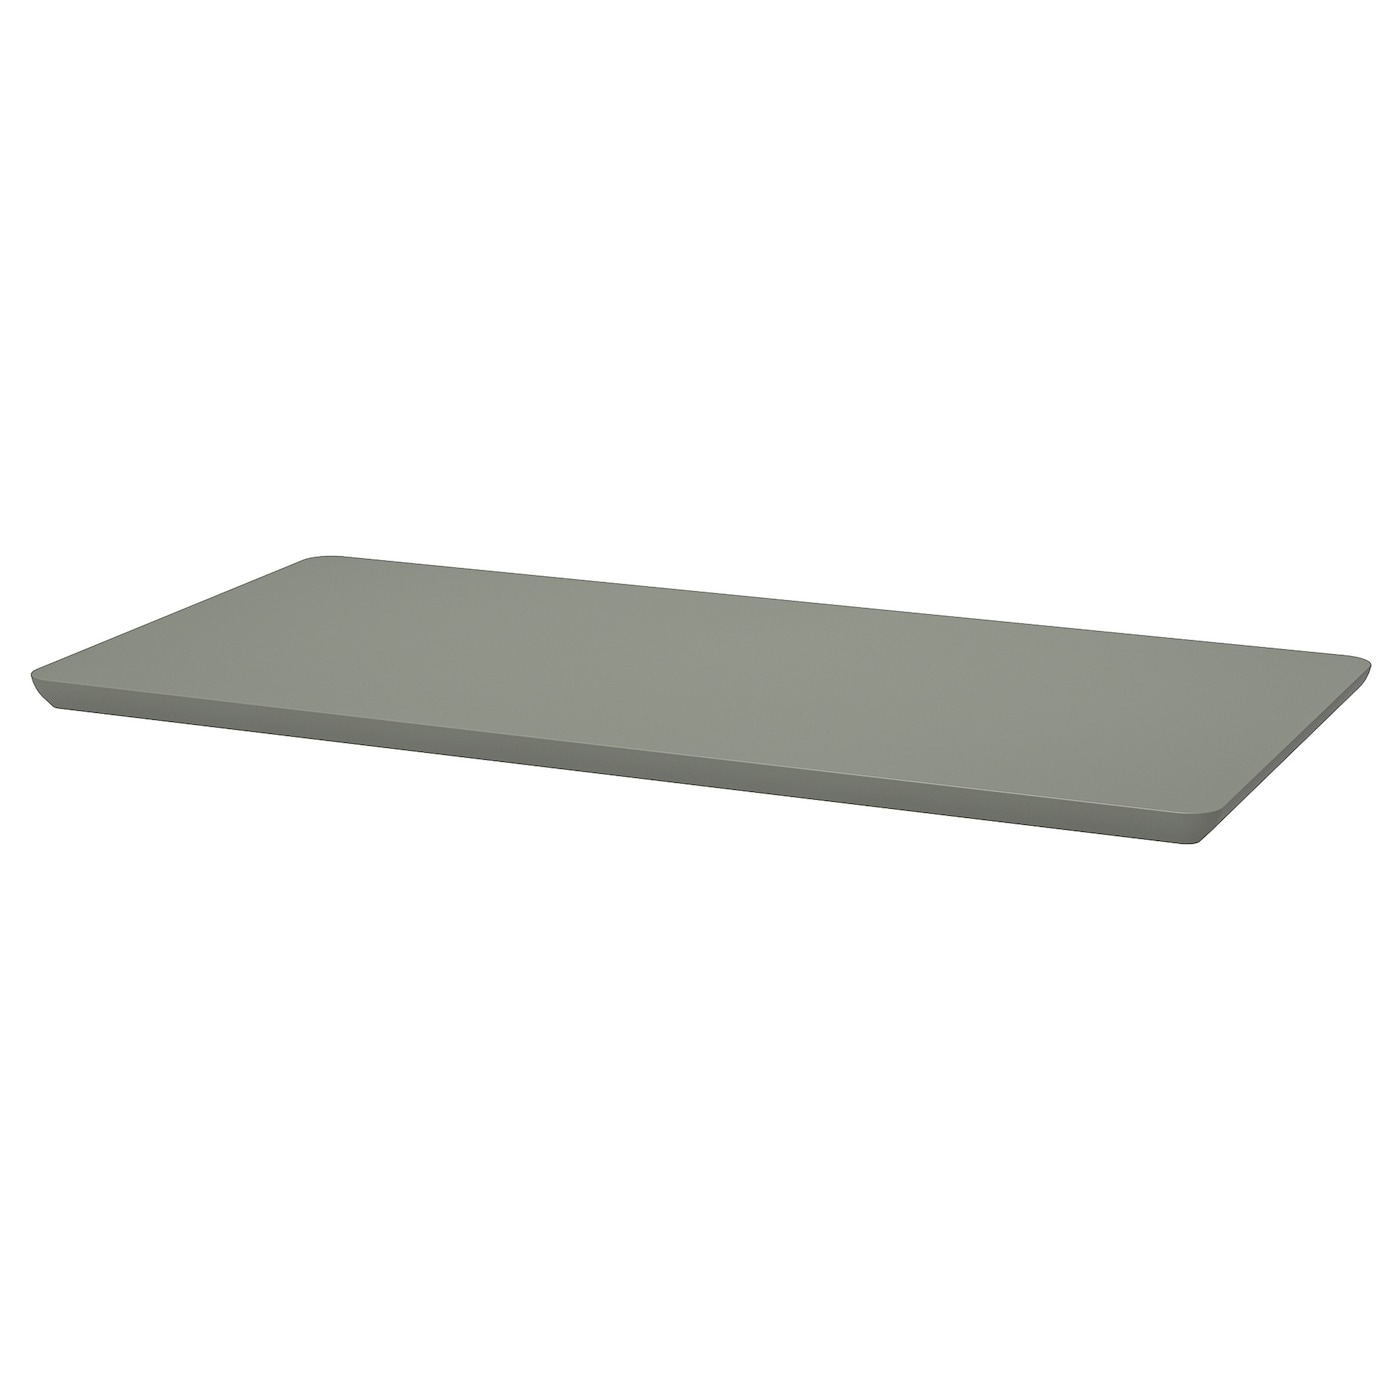 IKEA ÅMLIDEN table top